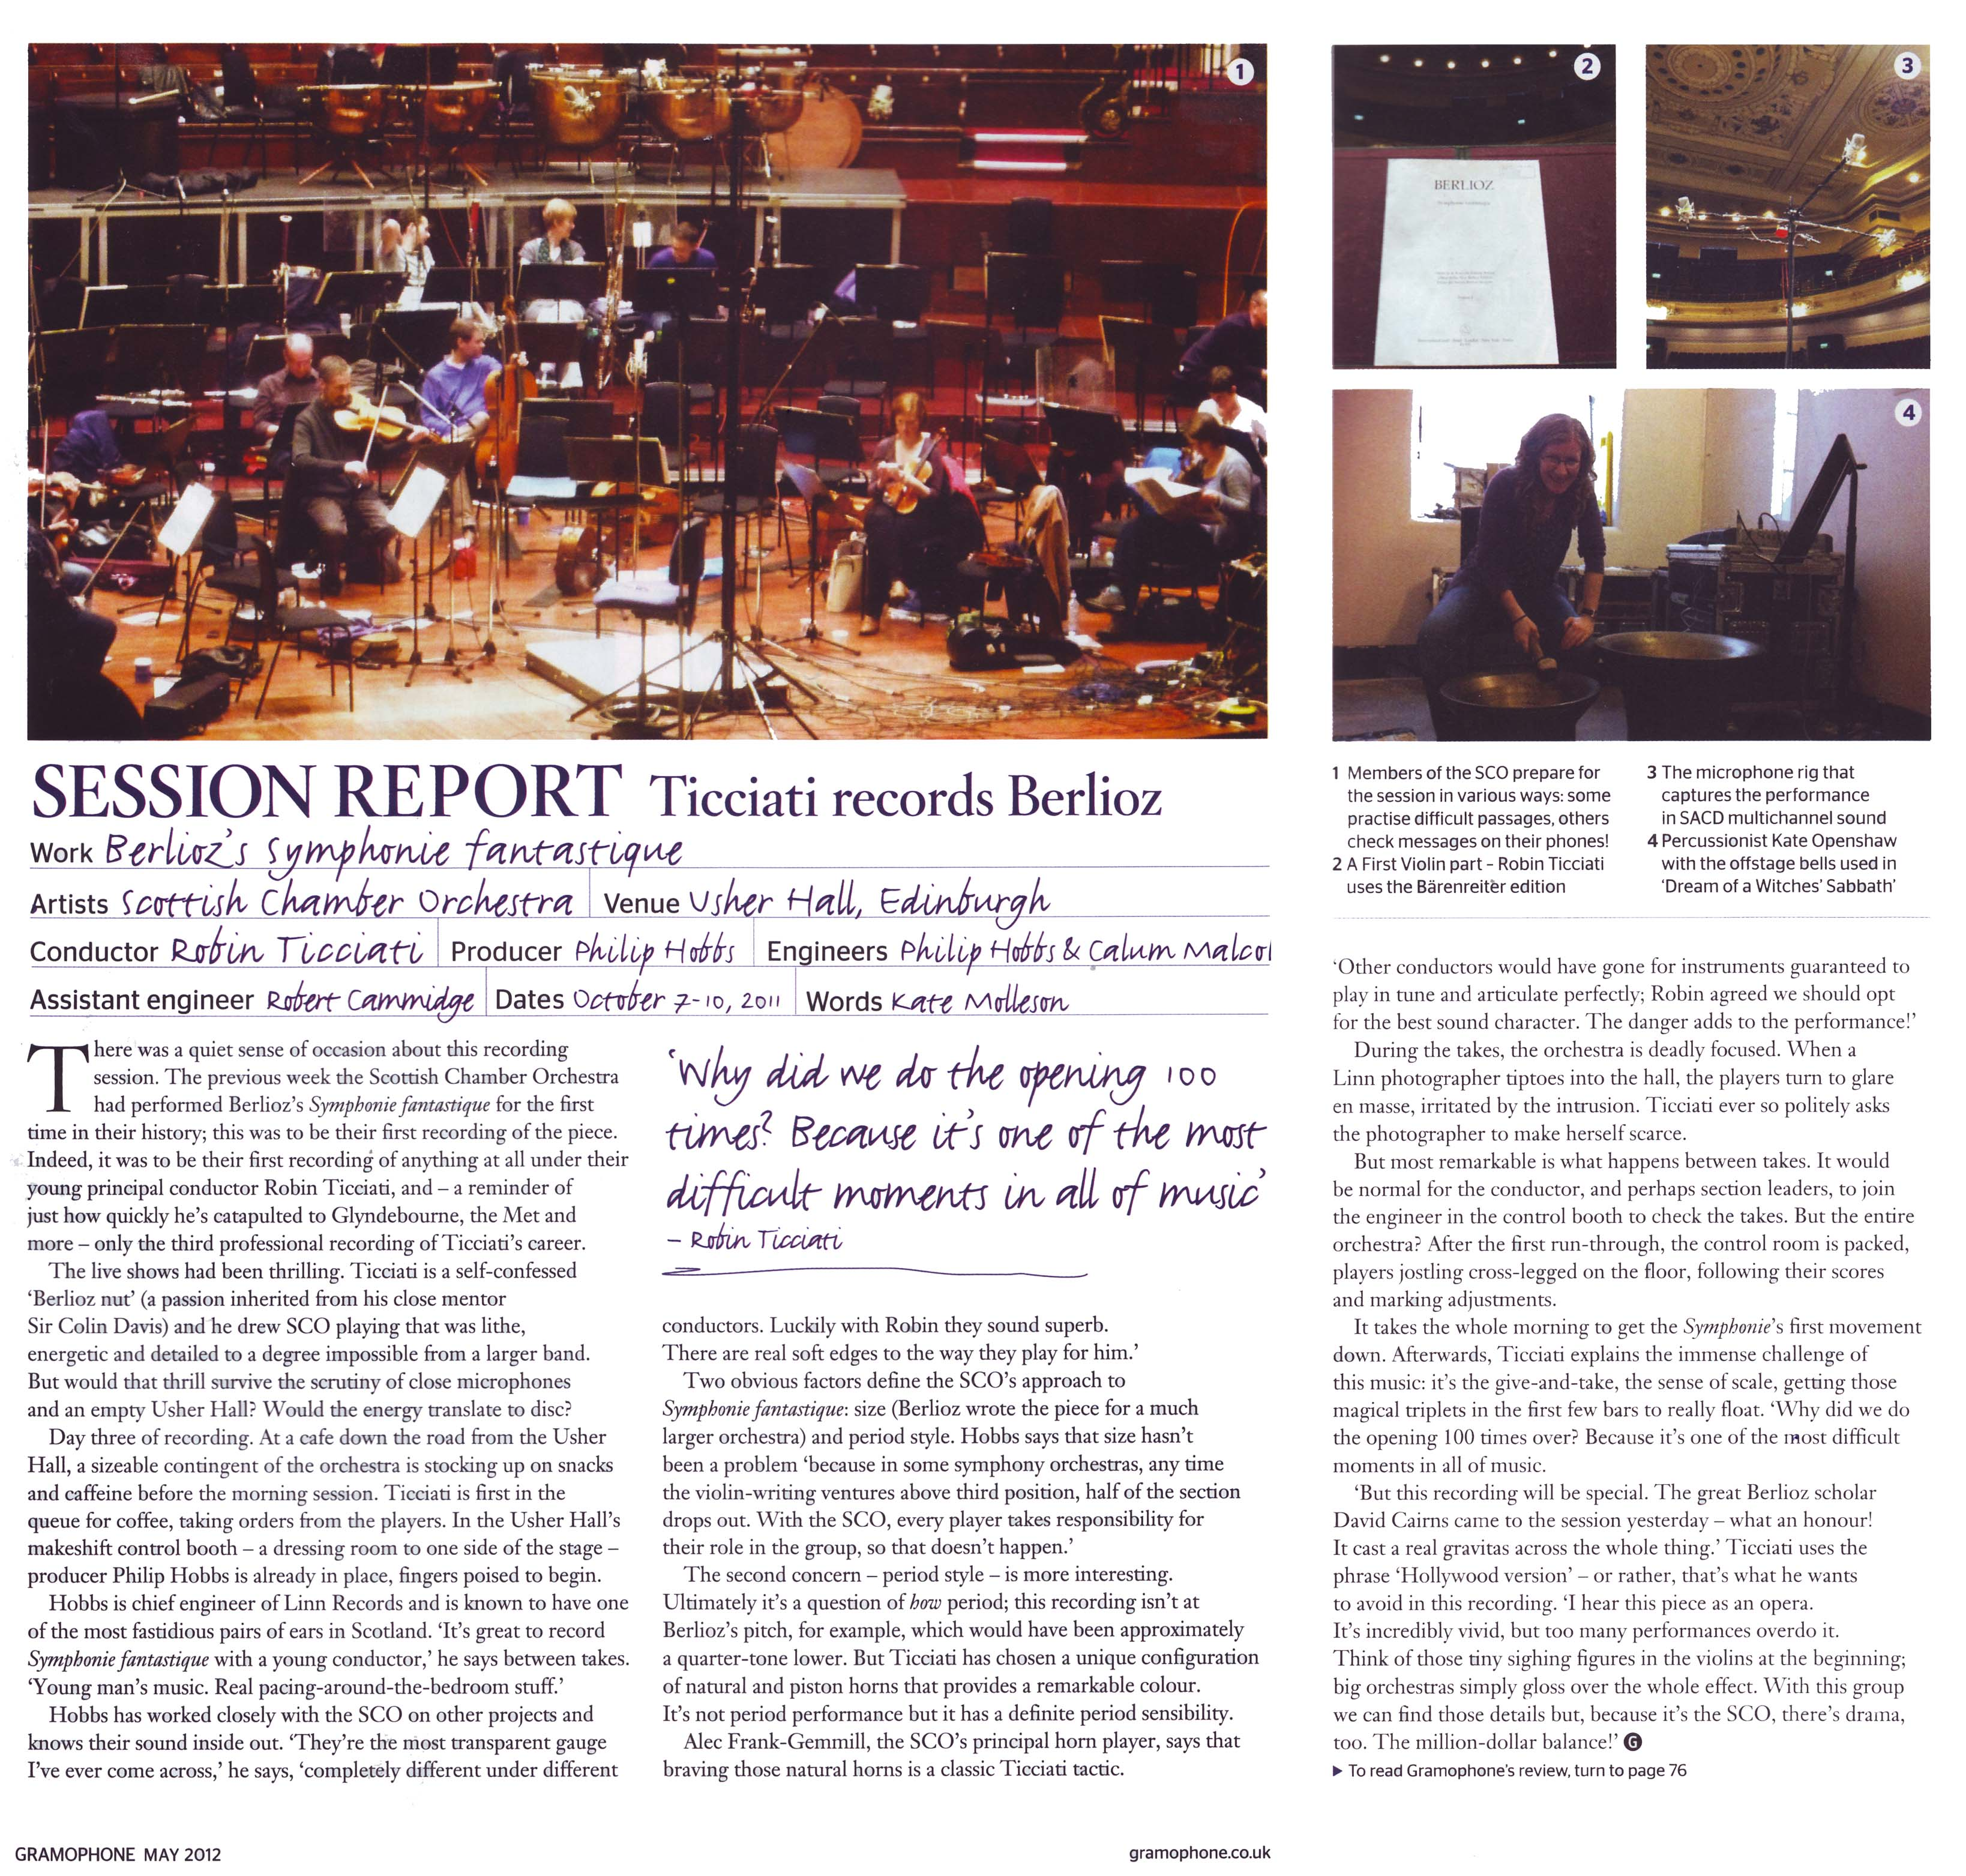 Gramophone May 2012 Session Report